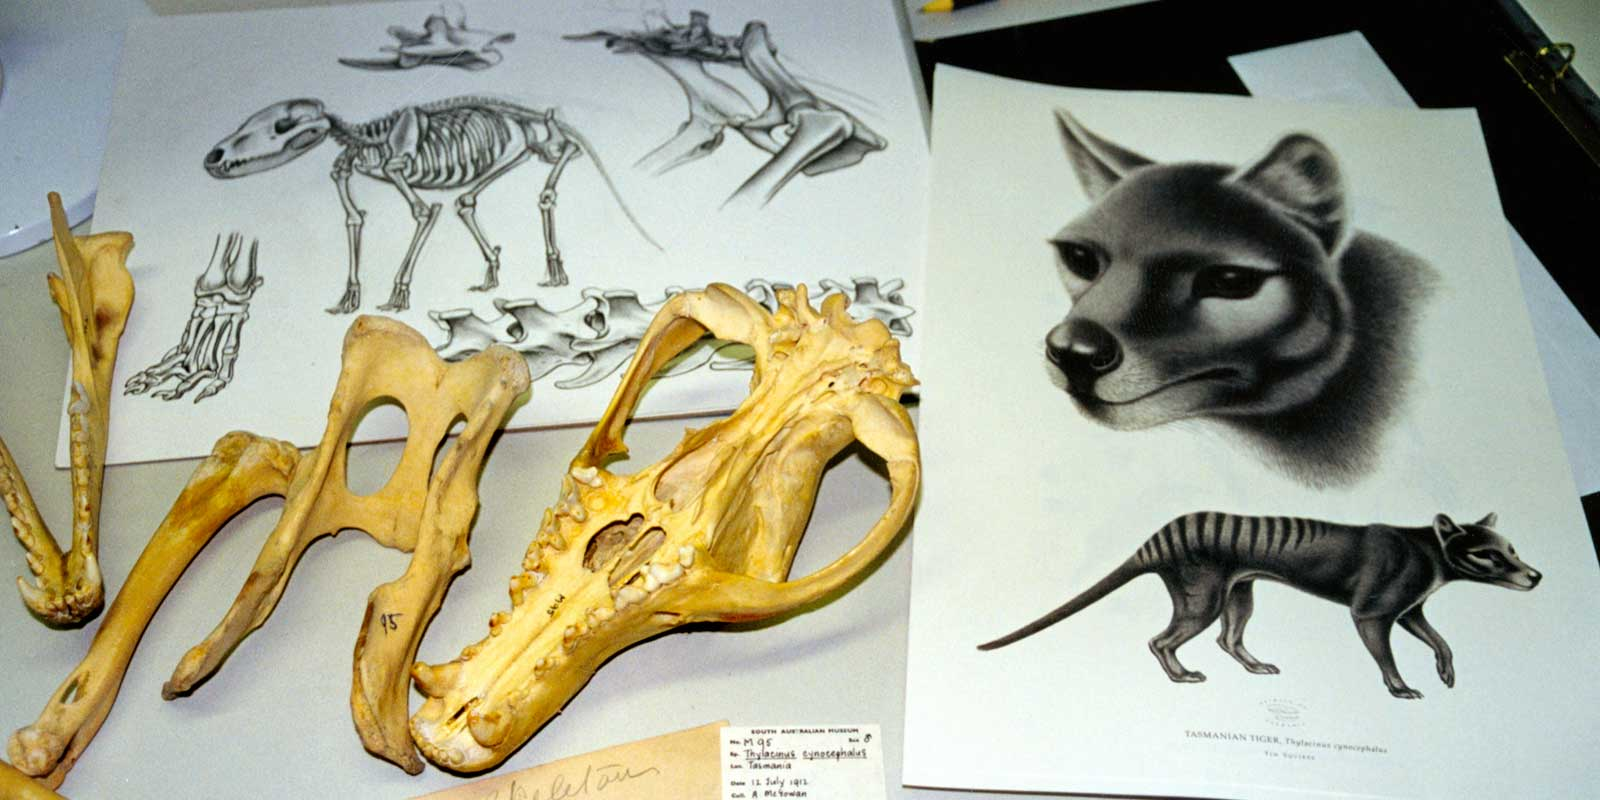 Studies of Tasmanian tiger (thylacine) anatomy by Tim Squires